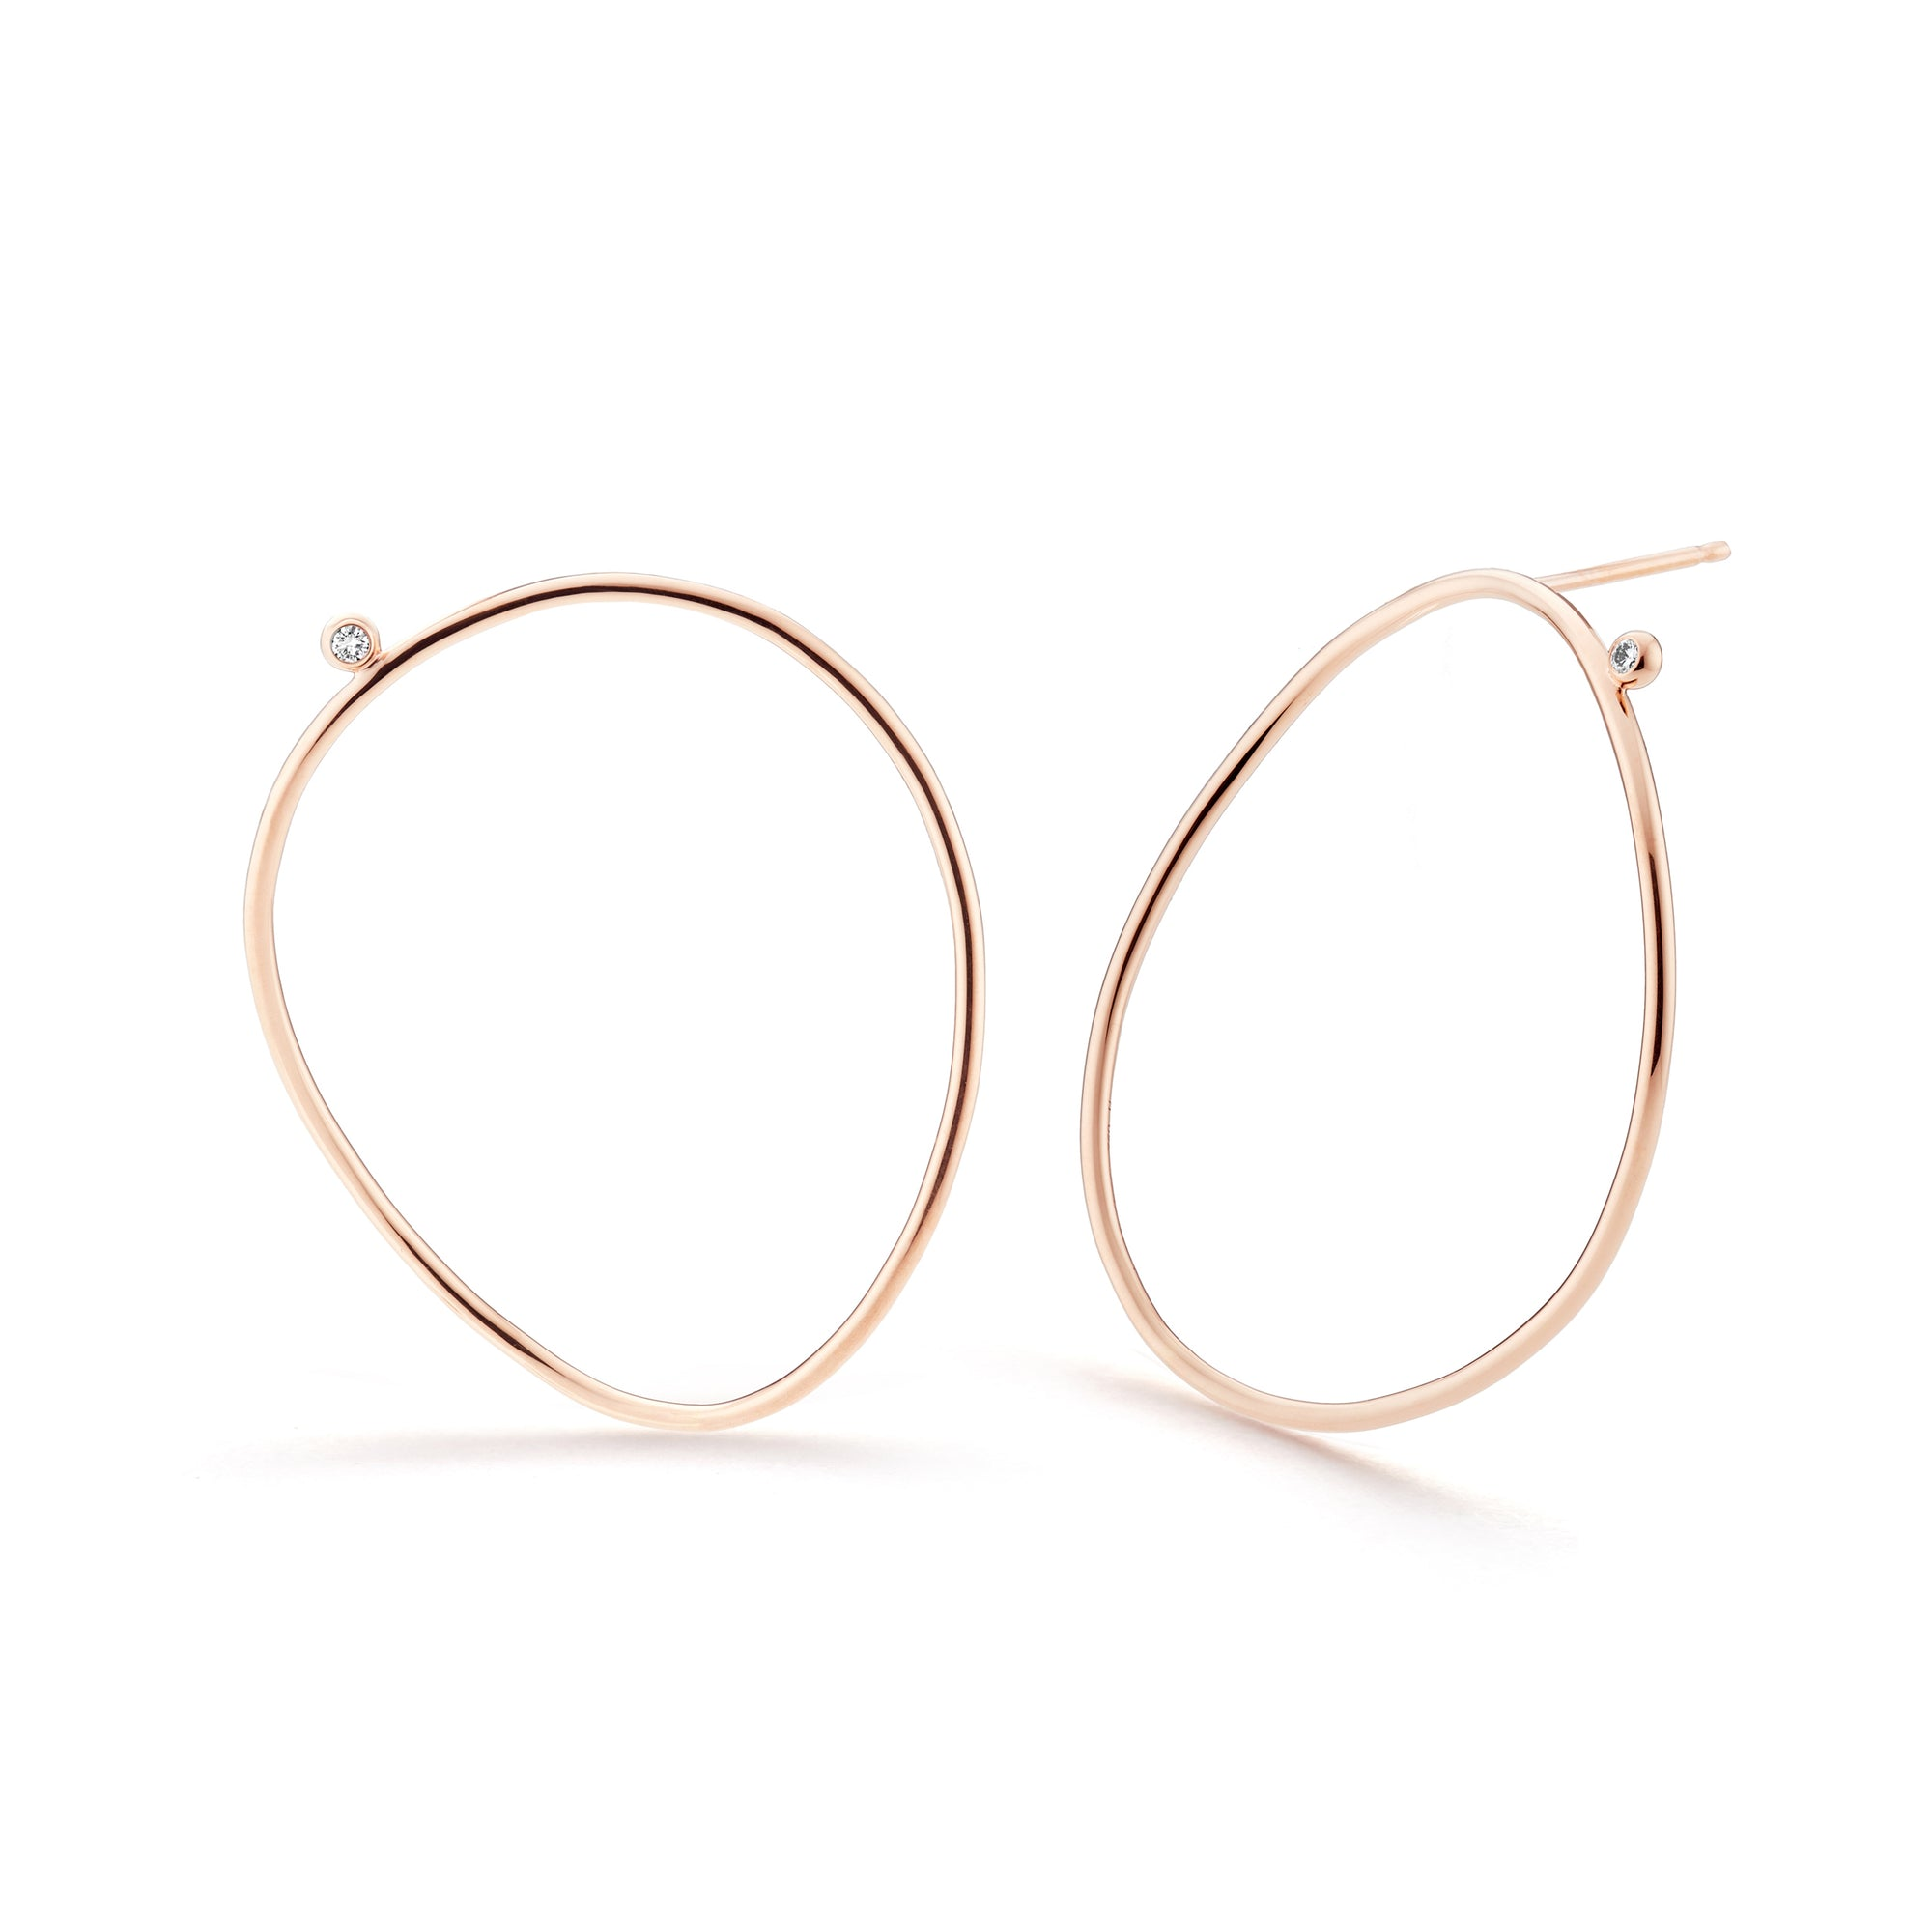 lvna rings earrings earring catbird ear